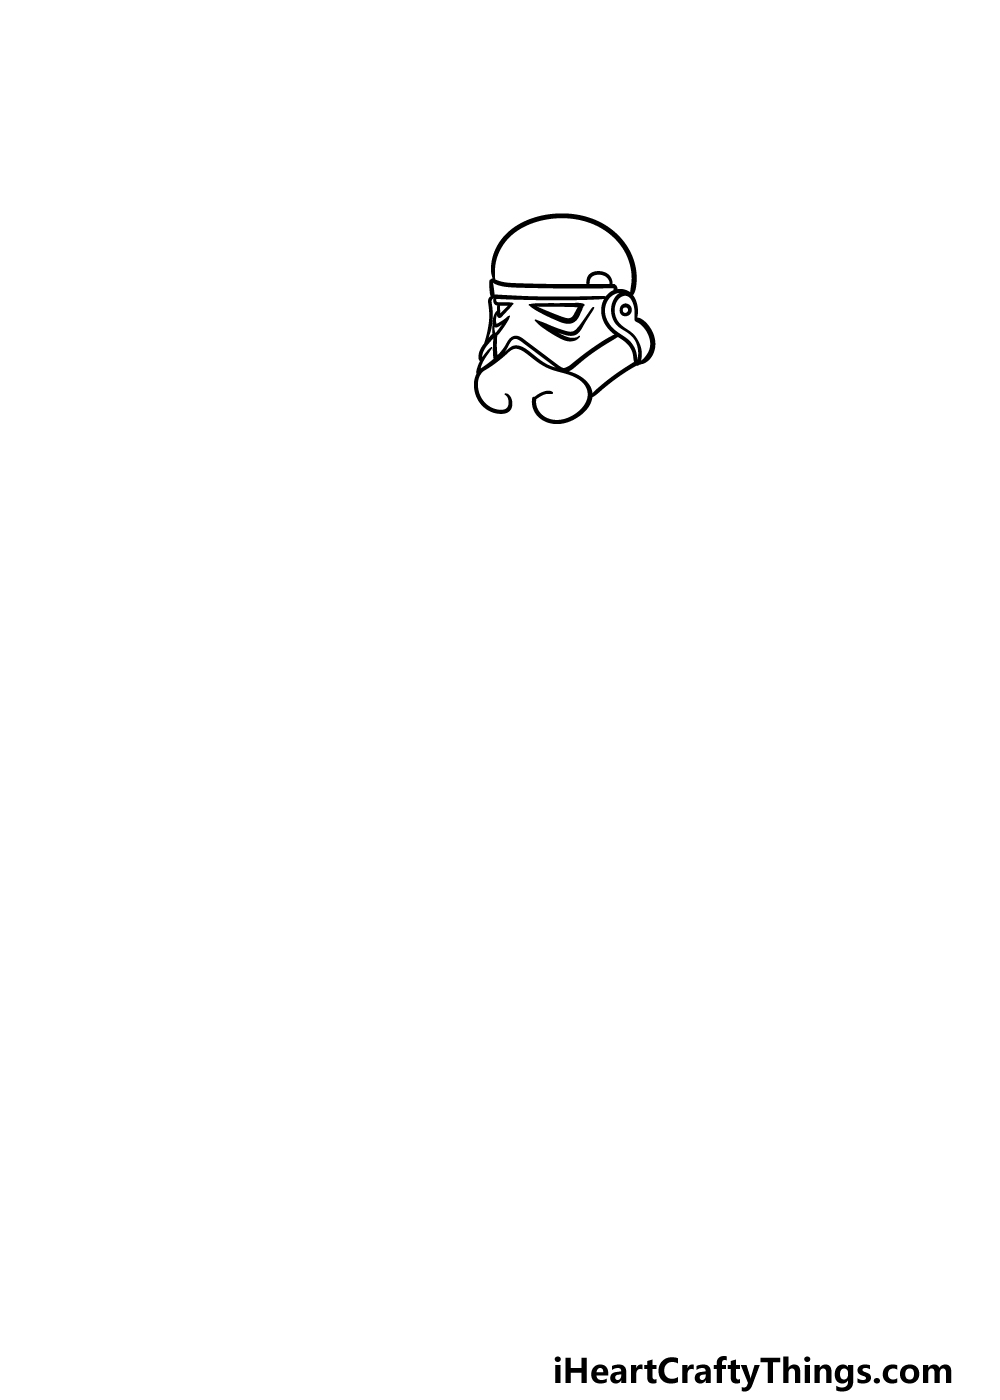 drawing a Stormtrooper step 1